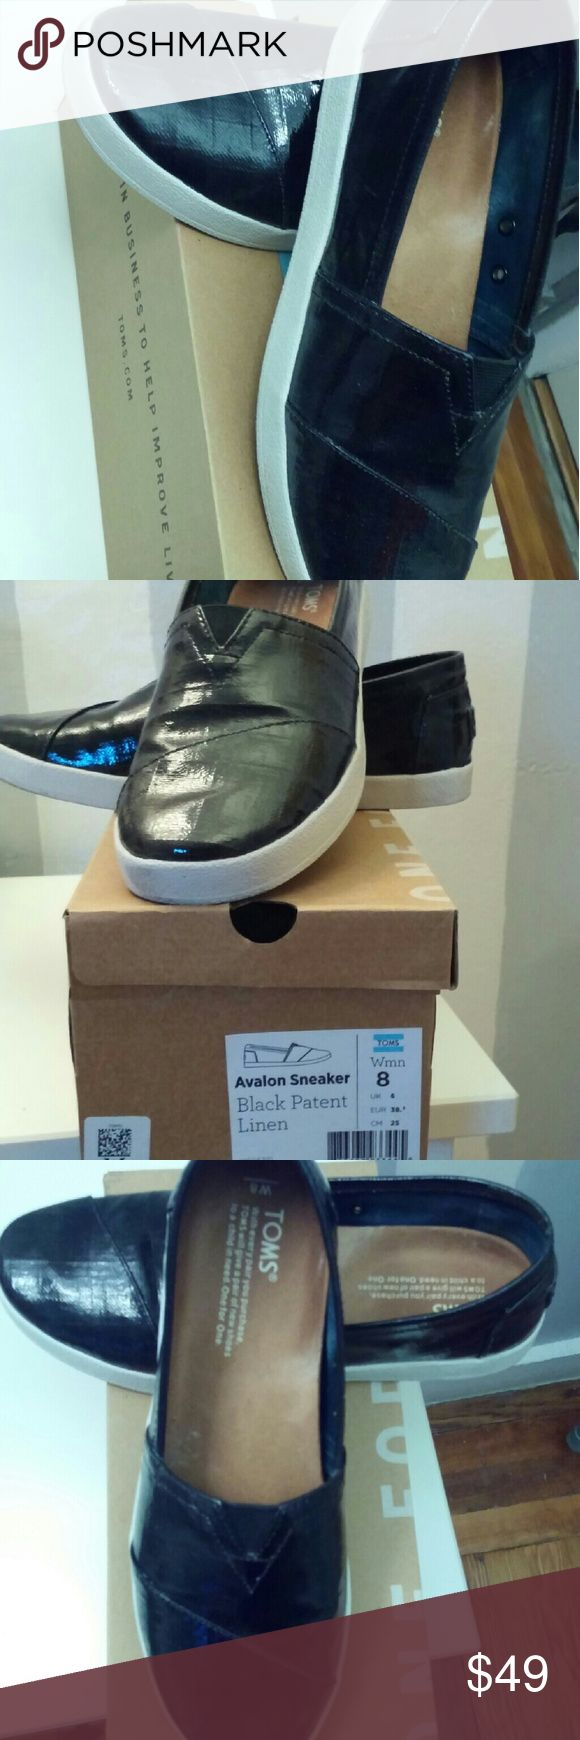 Black leather Toms. Worn one time. Avalon Sneaker in Black Patent Leather. Only worn once. TOMS Shoes Sneakers